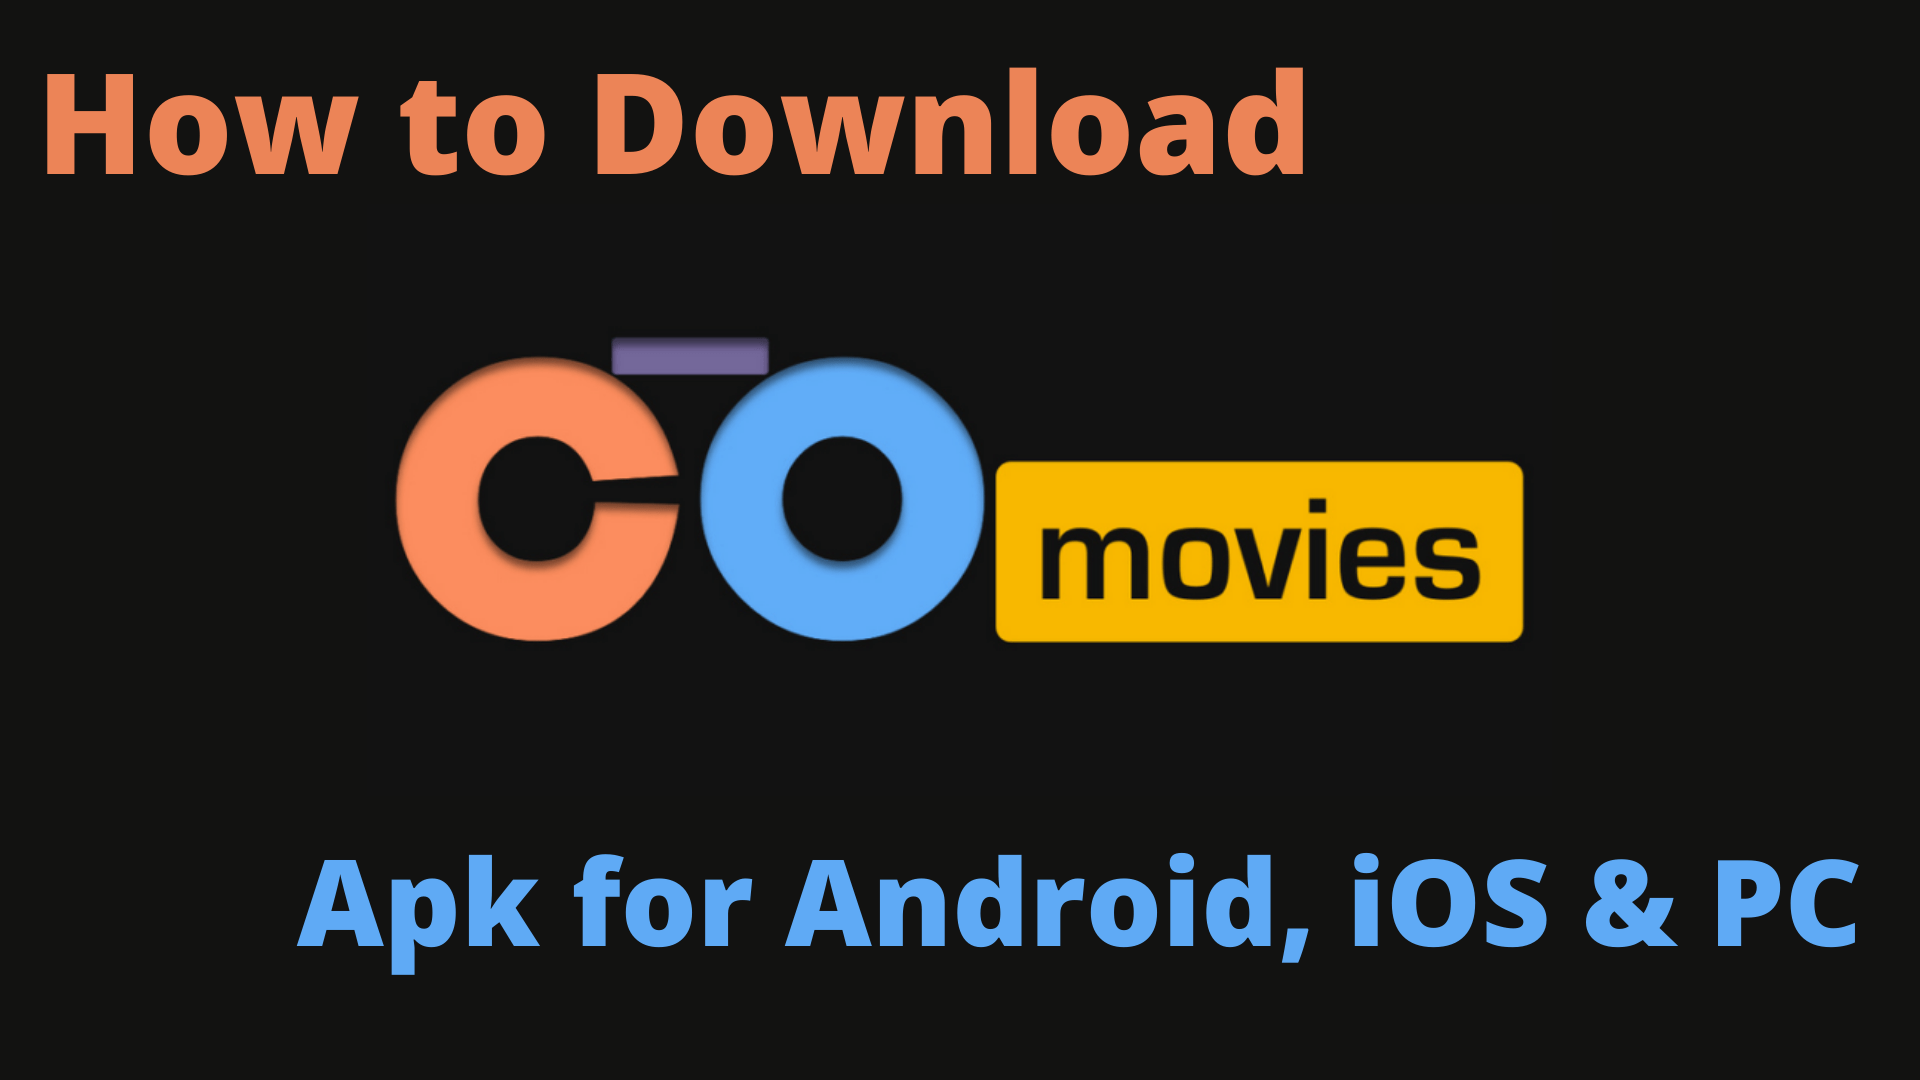 How to Download cotomovies apk